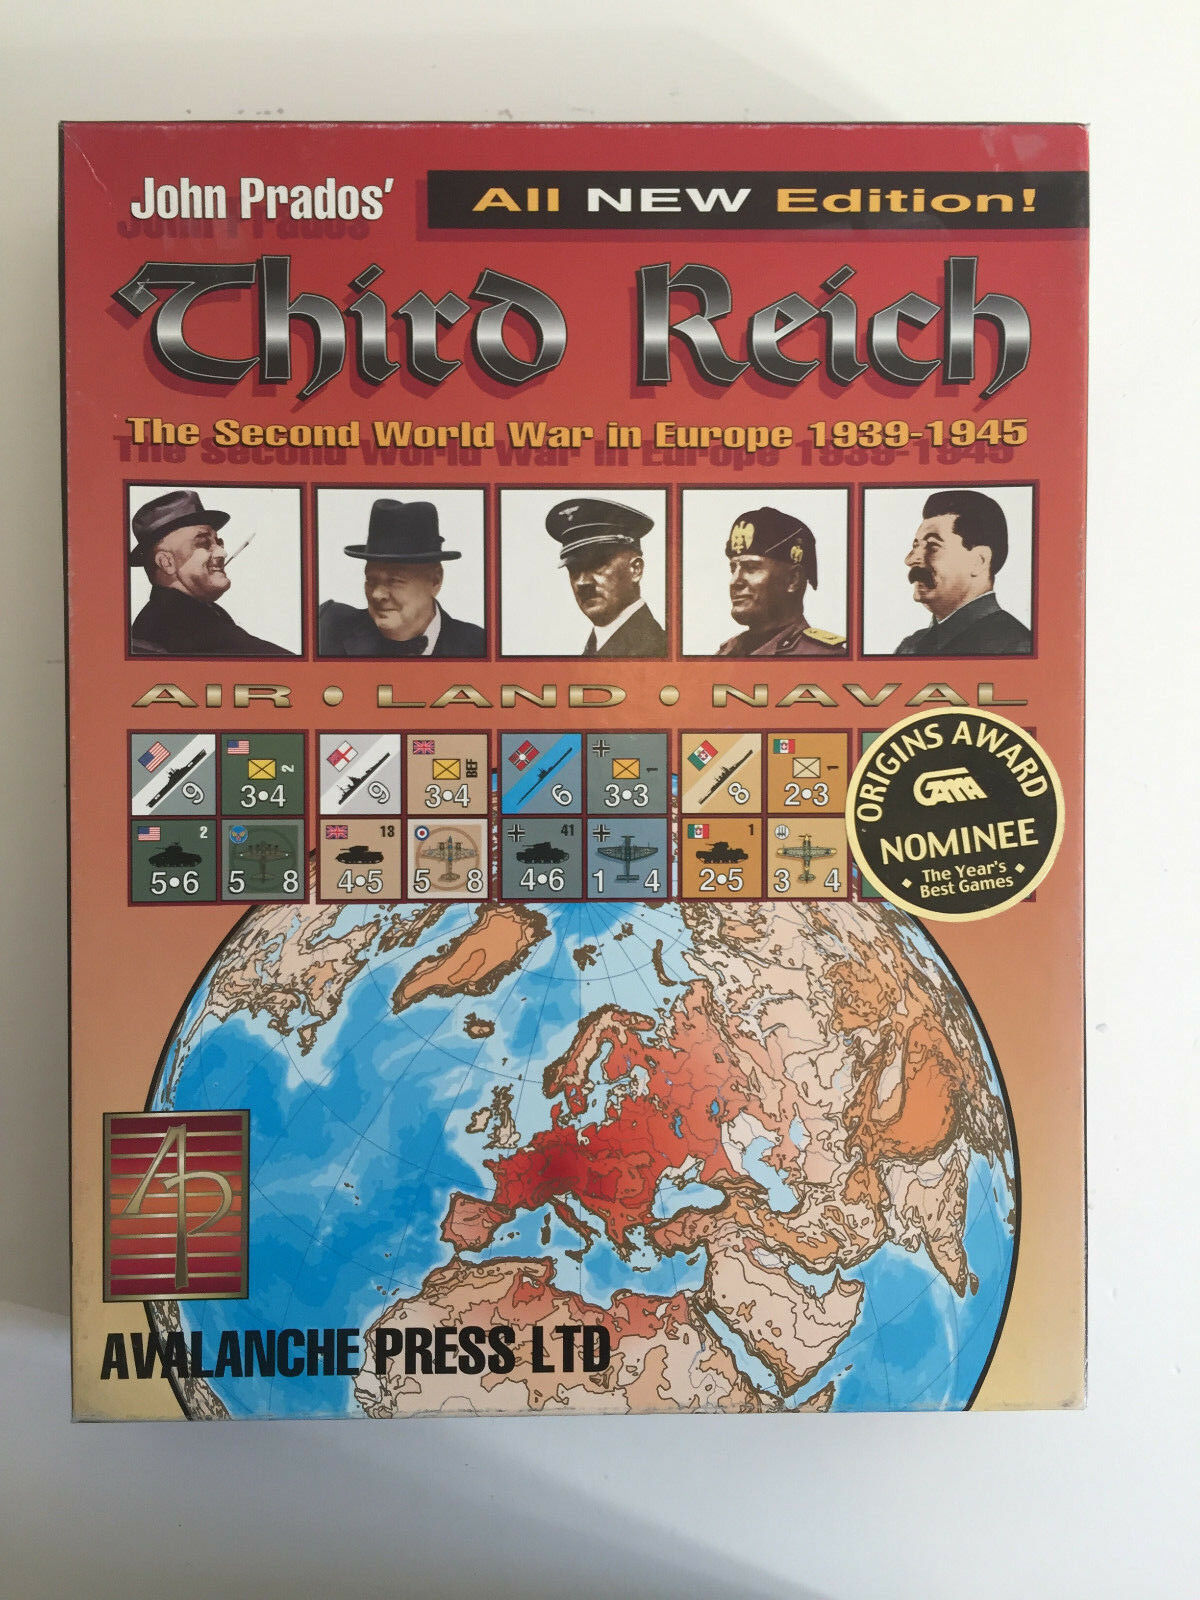 Third Reich all new edition John Prados WW II Avalanche Press Ltd RAR en RARO